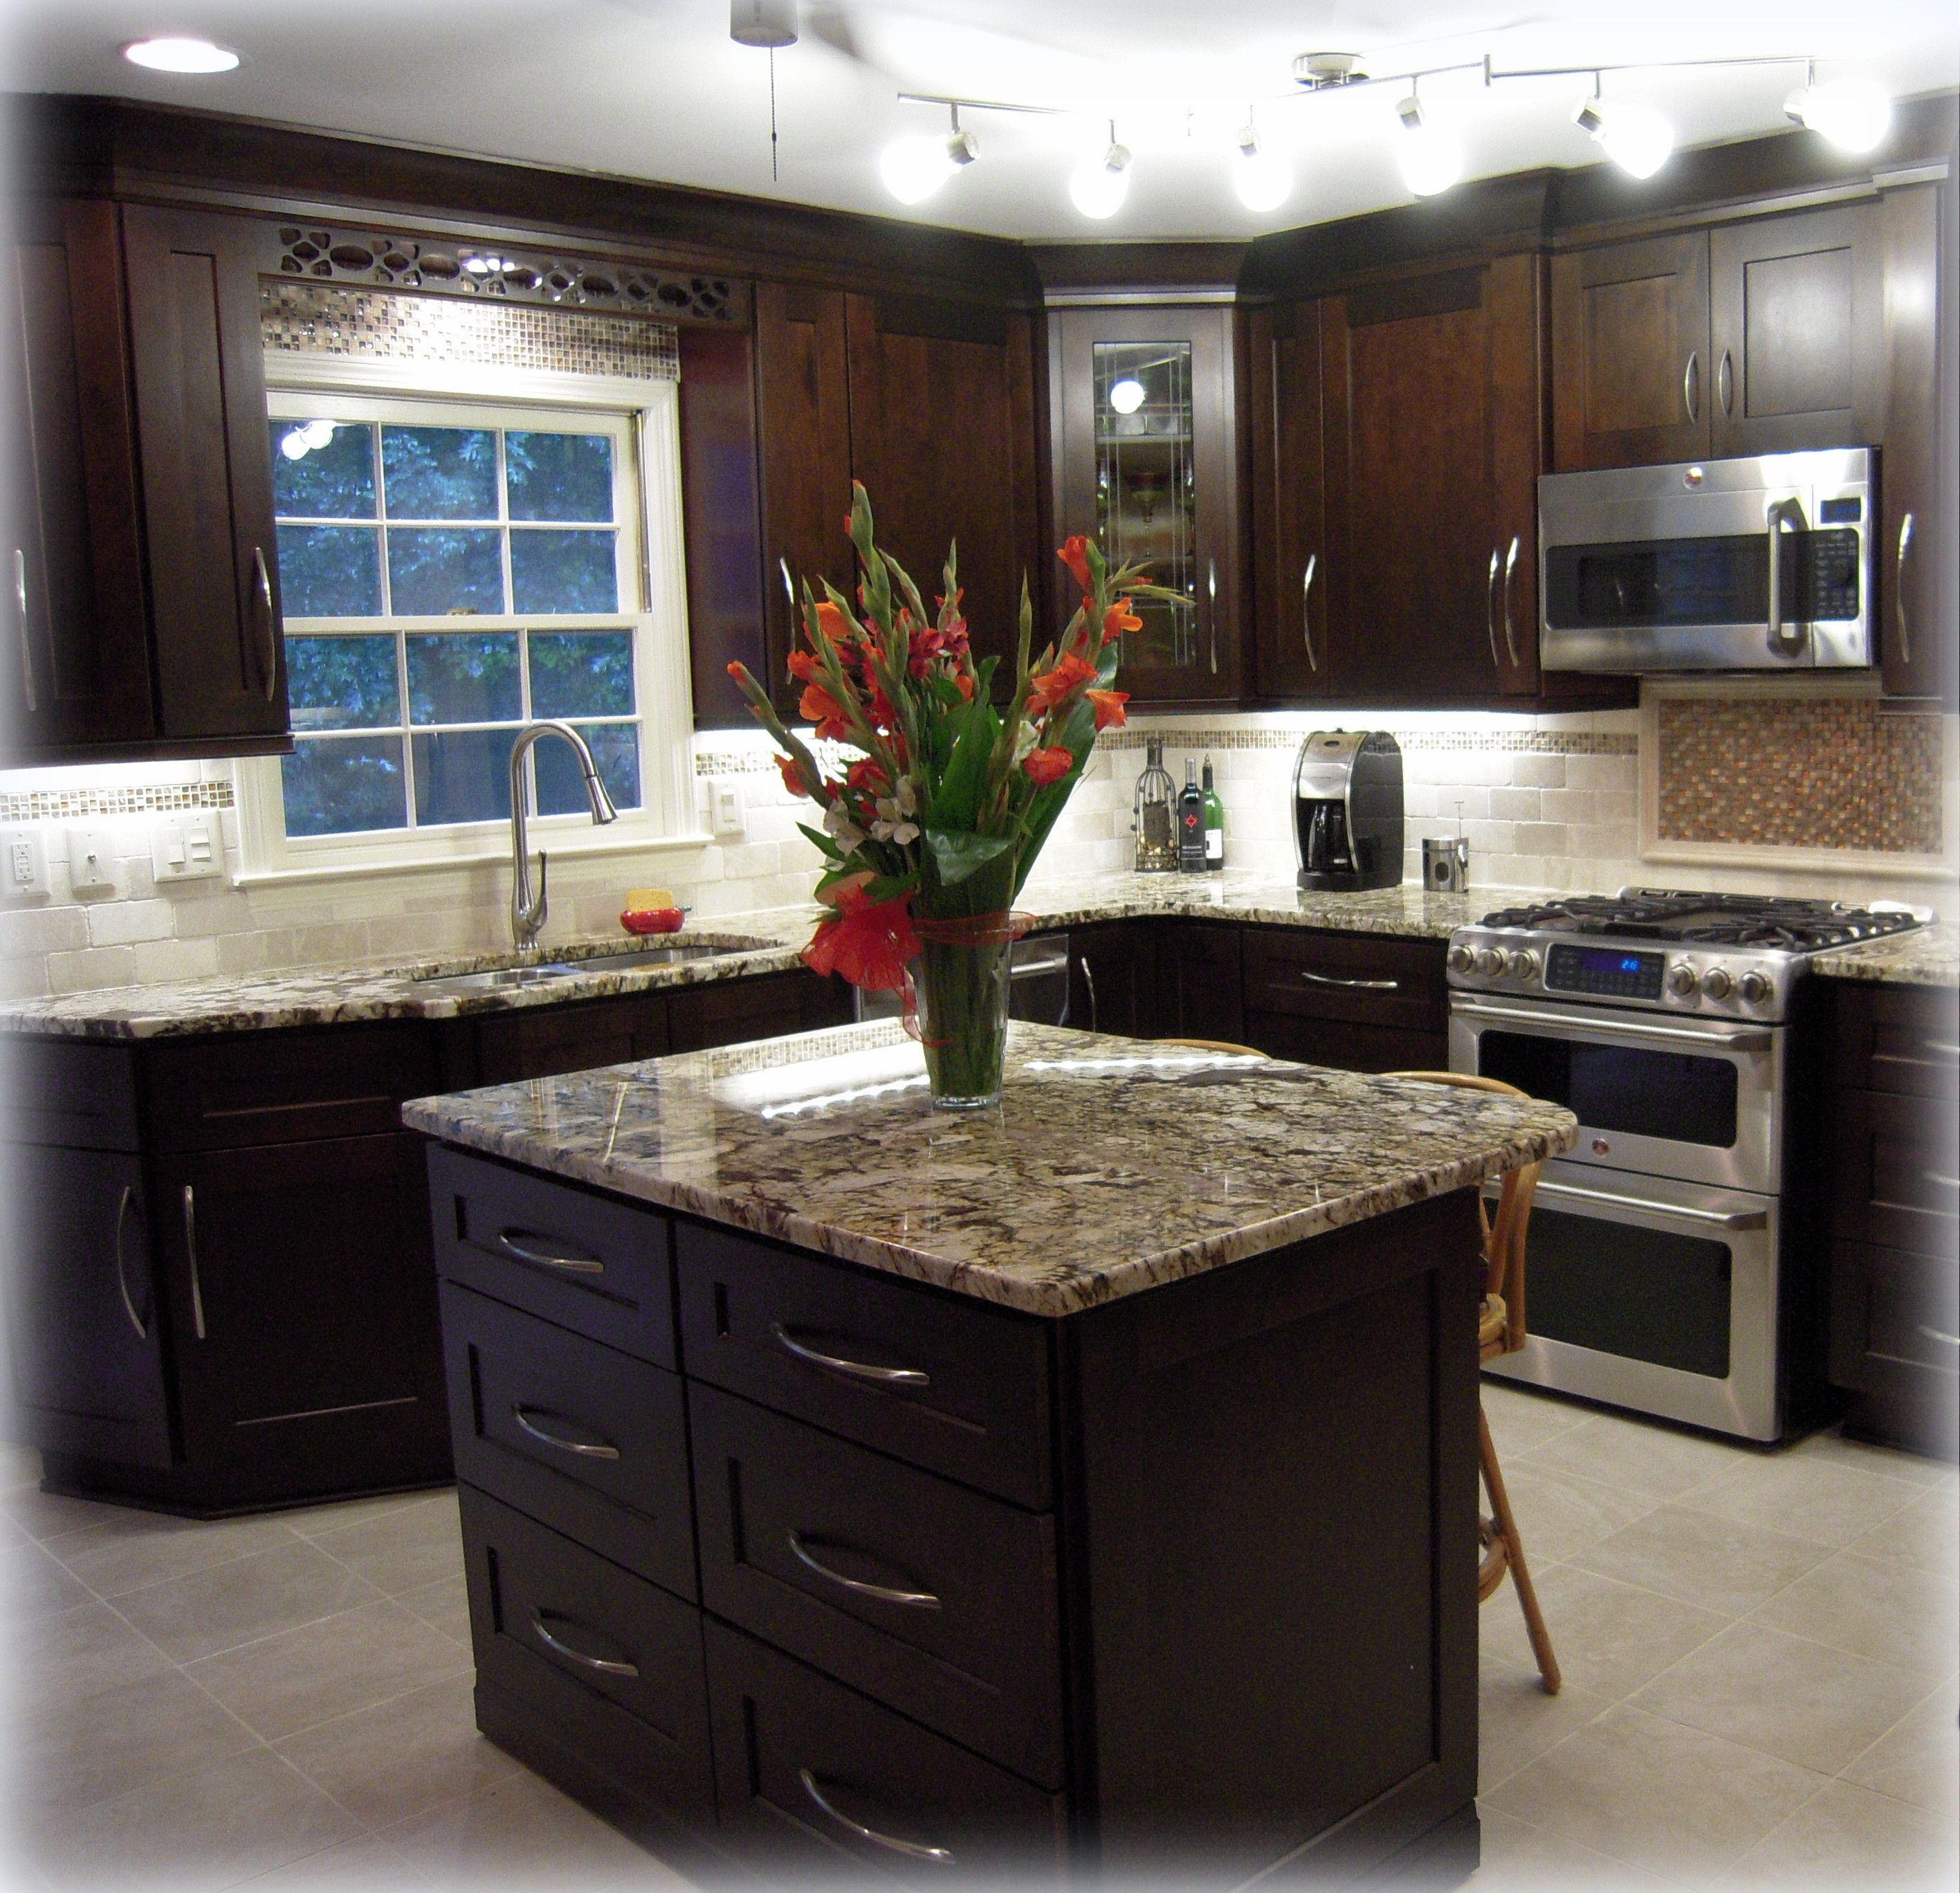 Kitchen With Living Room Design: Completed Kitchen. Mocha Maple Shaker Cabinets, Exotic